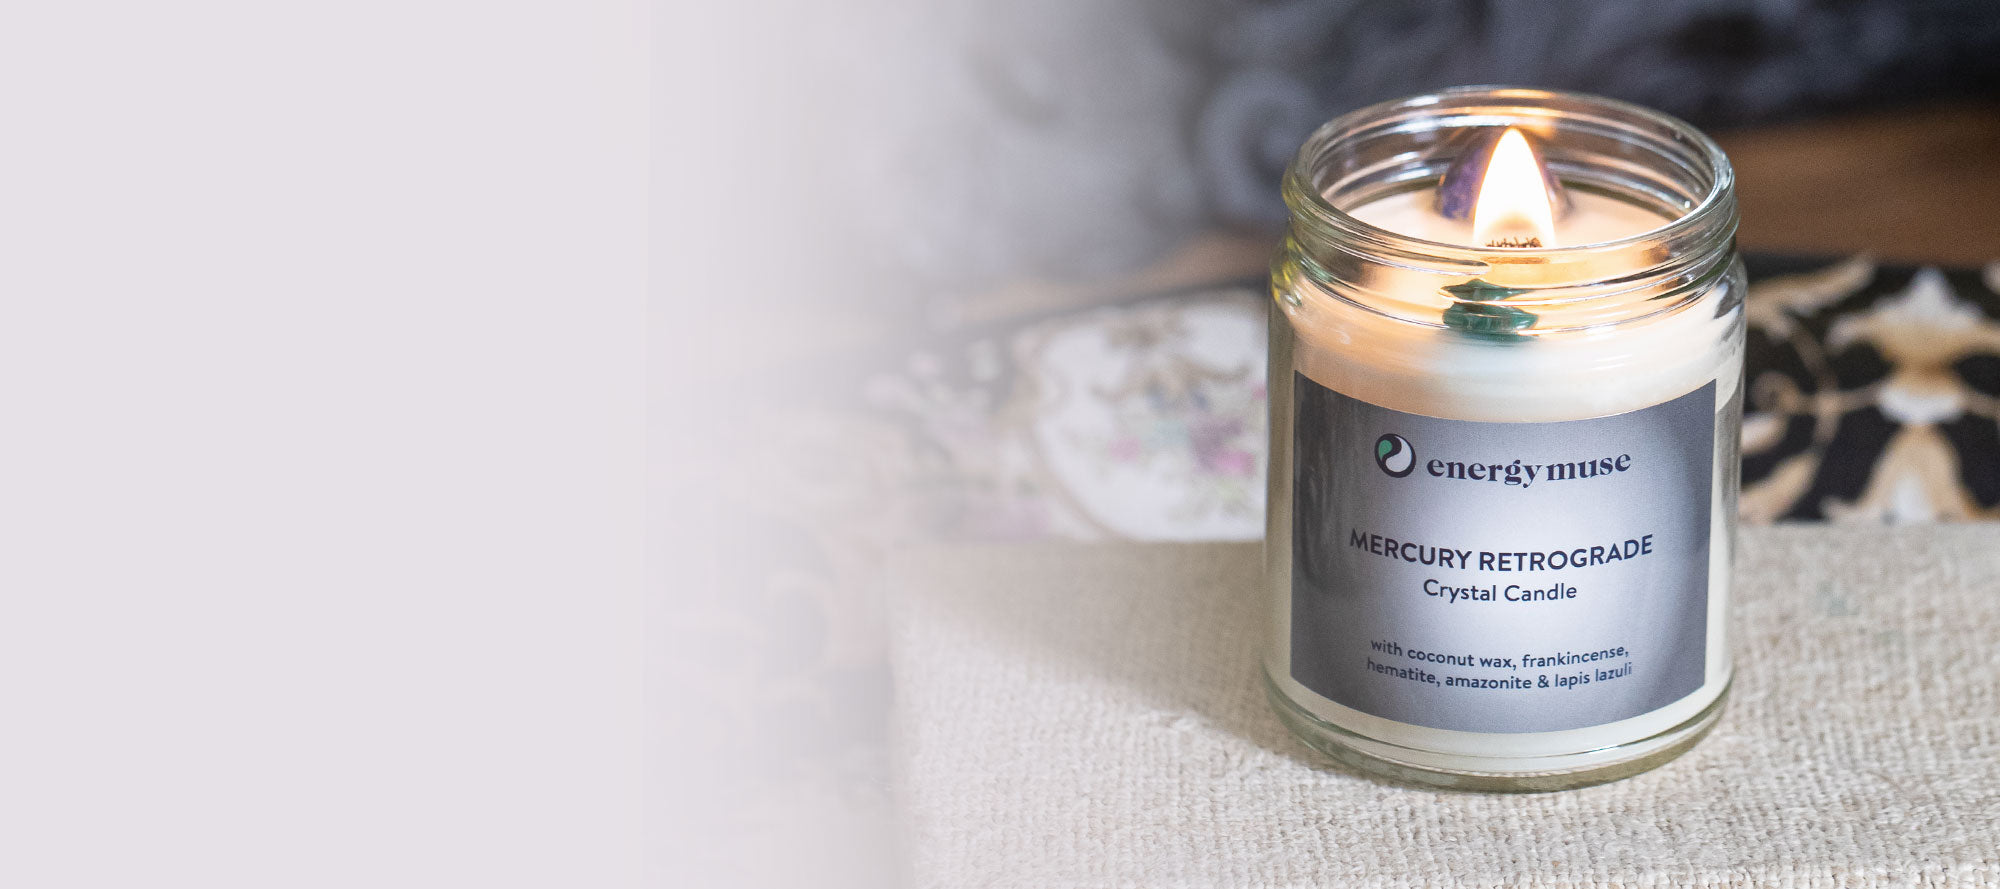 Our Limited Edition Mercury Retrograde Candle is Back!